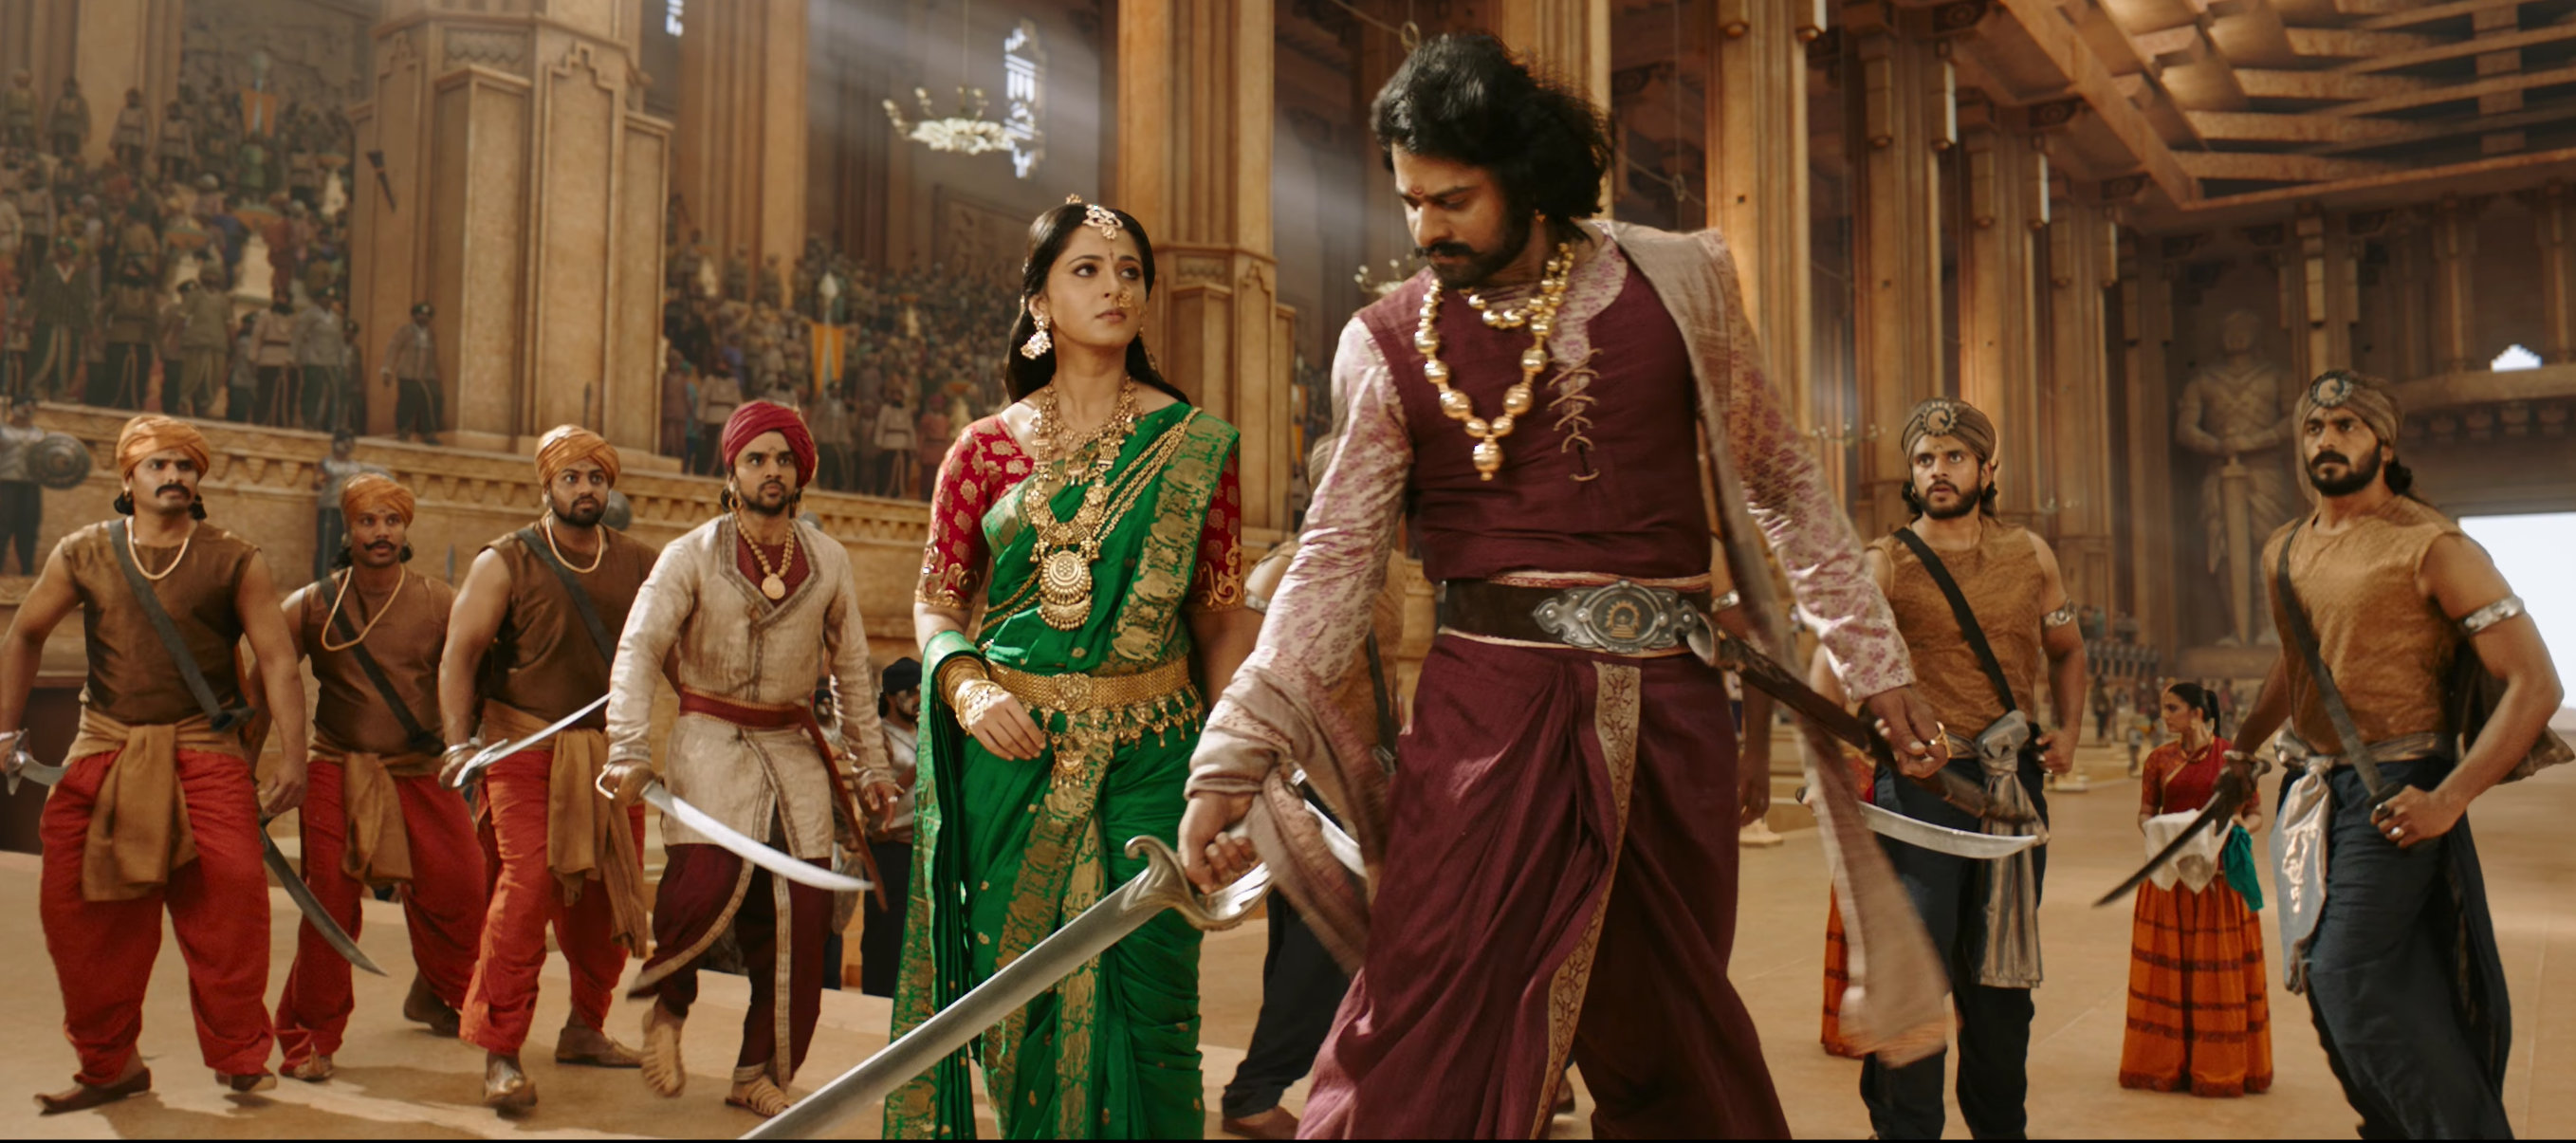 Baahubali - Prabhas and Anushka Wallpaper HD -1 - Free Download